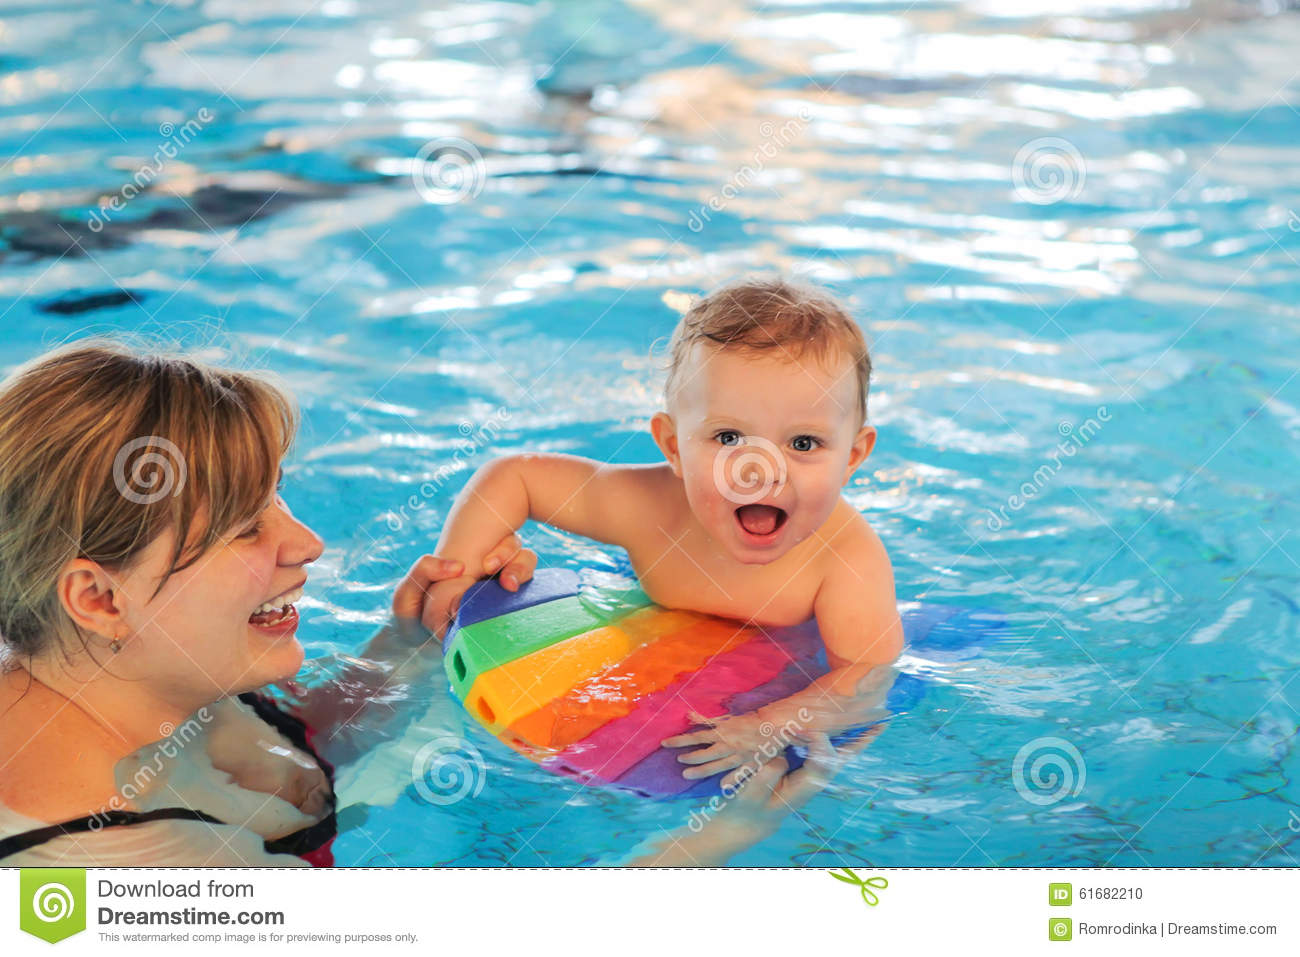 How to quickly learn to swim and child, and adult